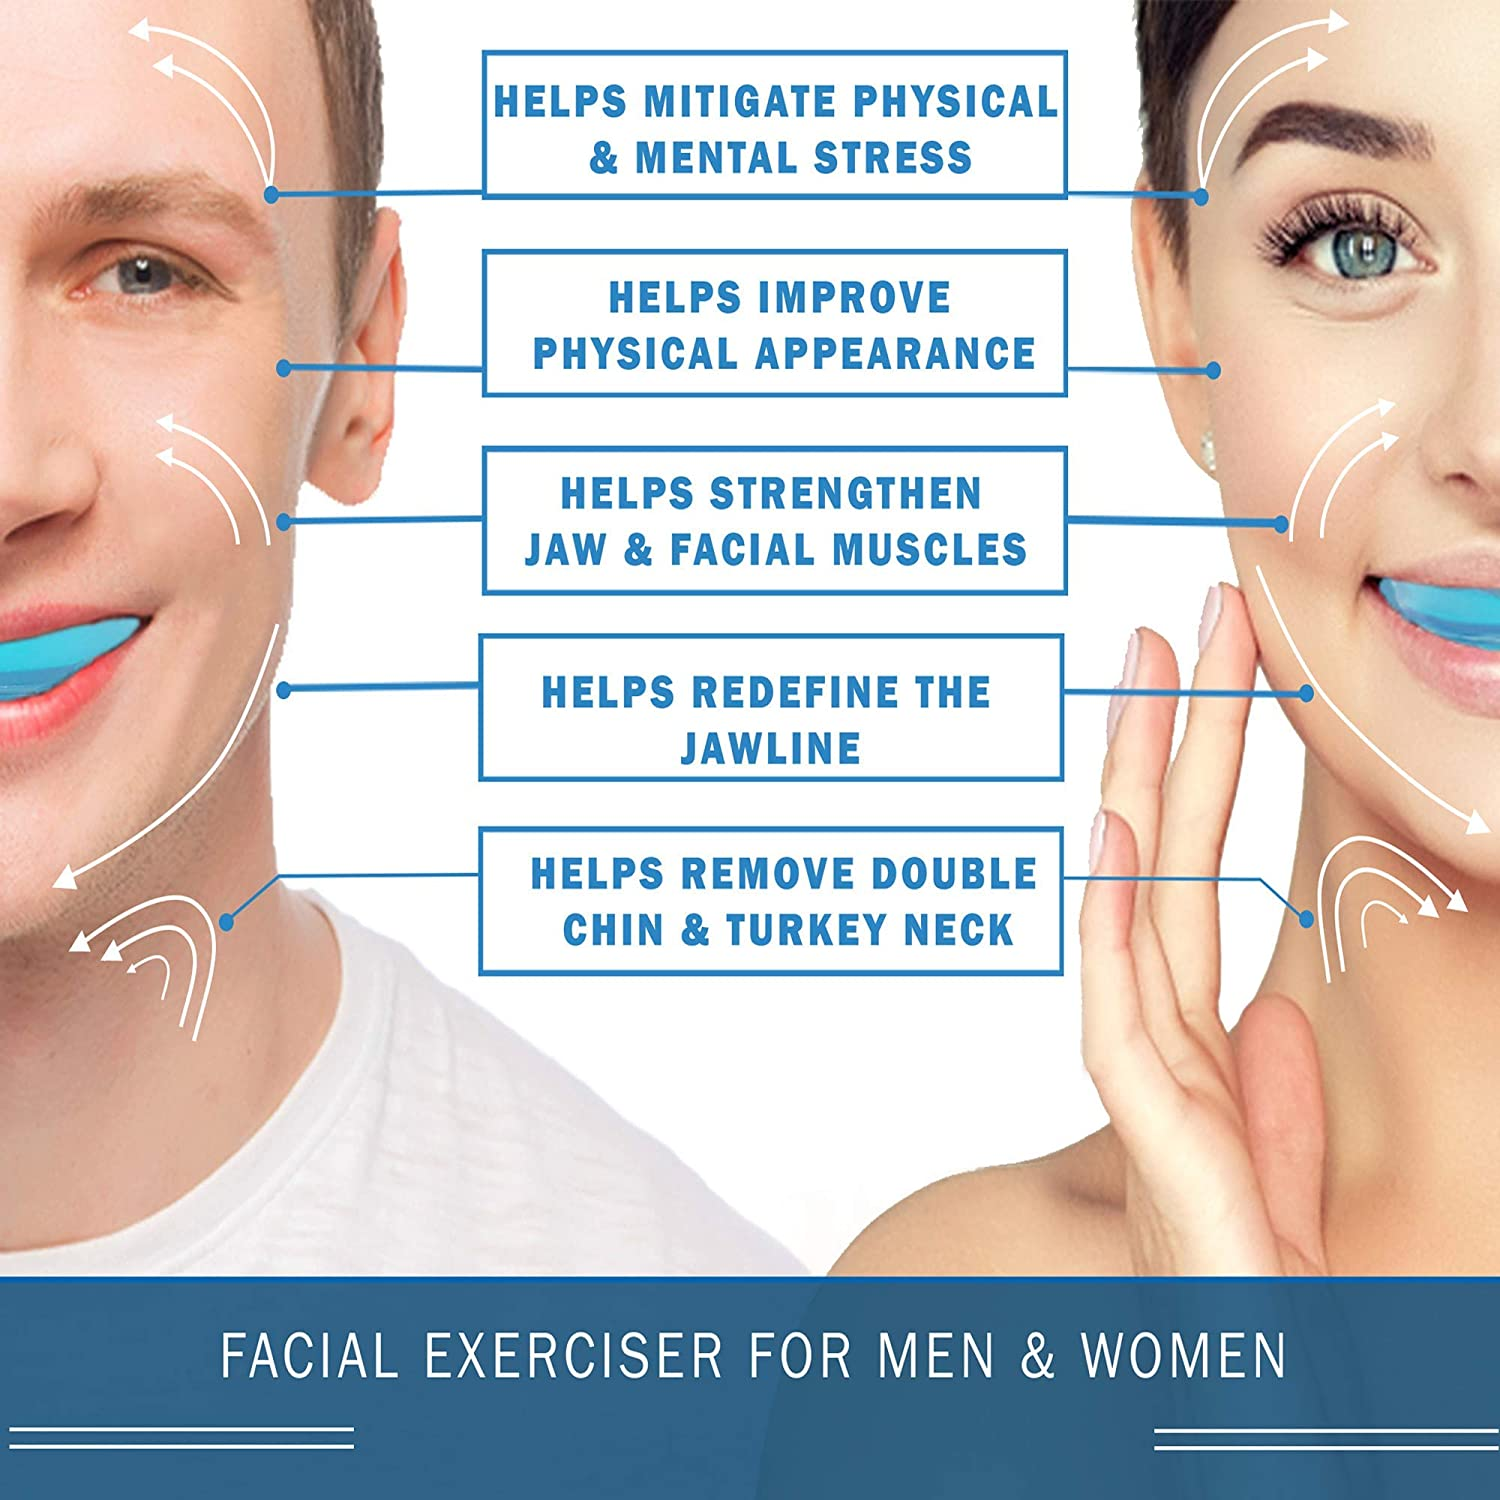 Face Muscle Exerciser Jawlifter Blue Jaw Exerciser Double Chin Reducer for Women and Men Face Slimmer Ball Jawline Exerciser 1 PCS Neck Trainer